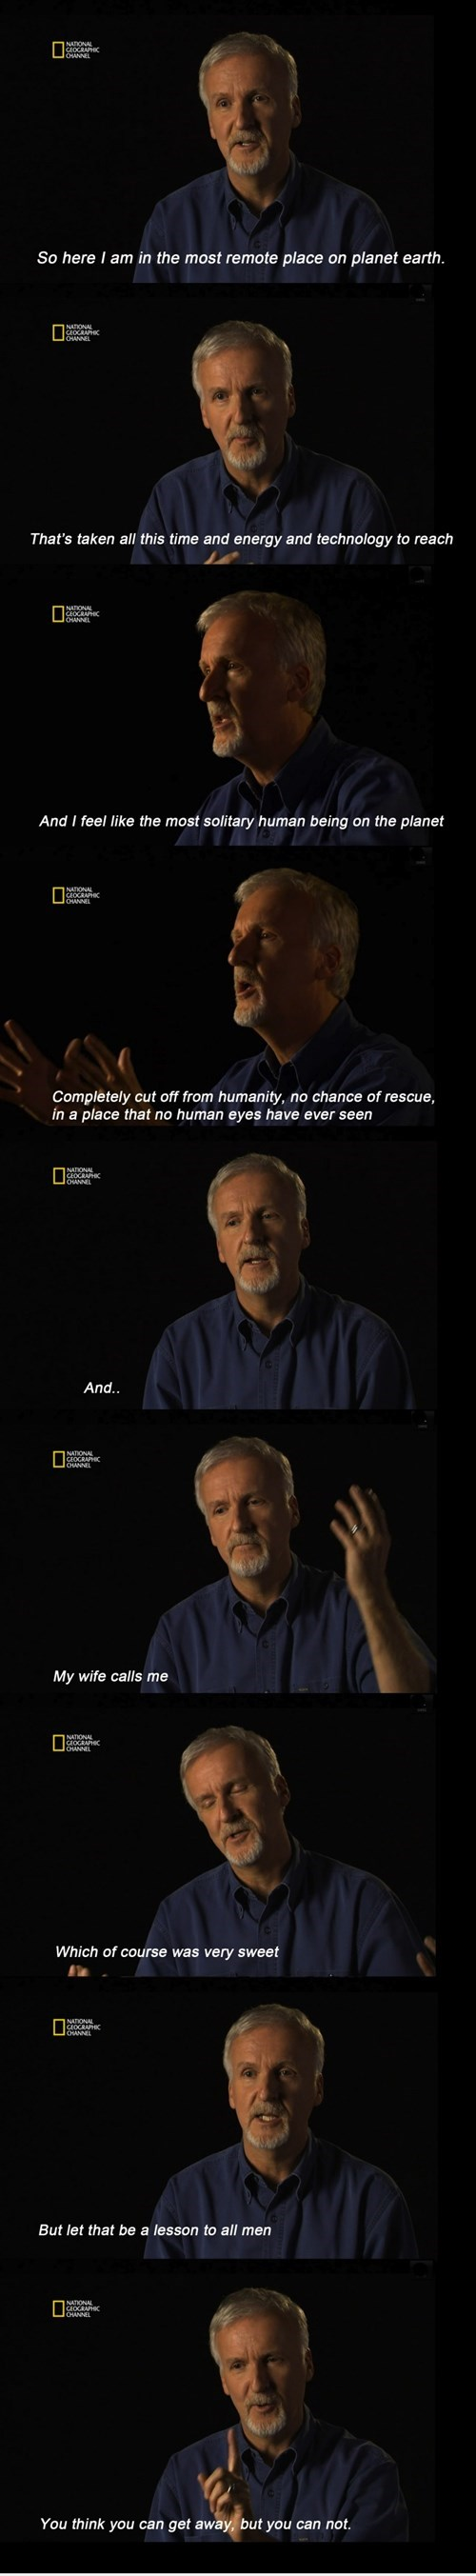 how the hell did james cameron have cell service?